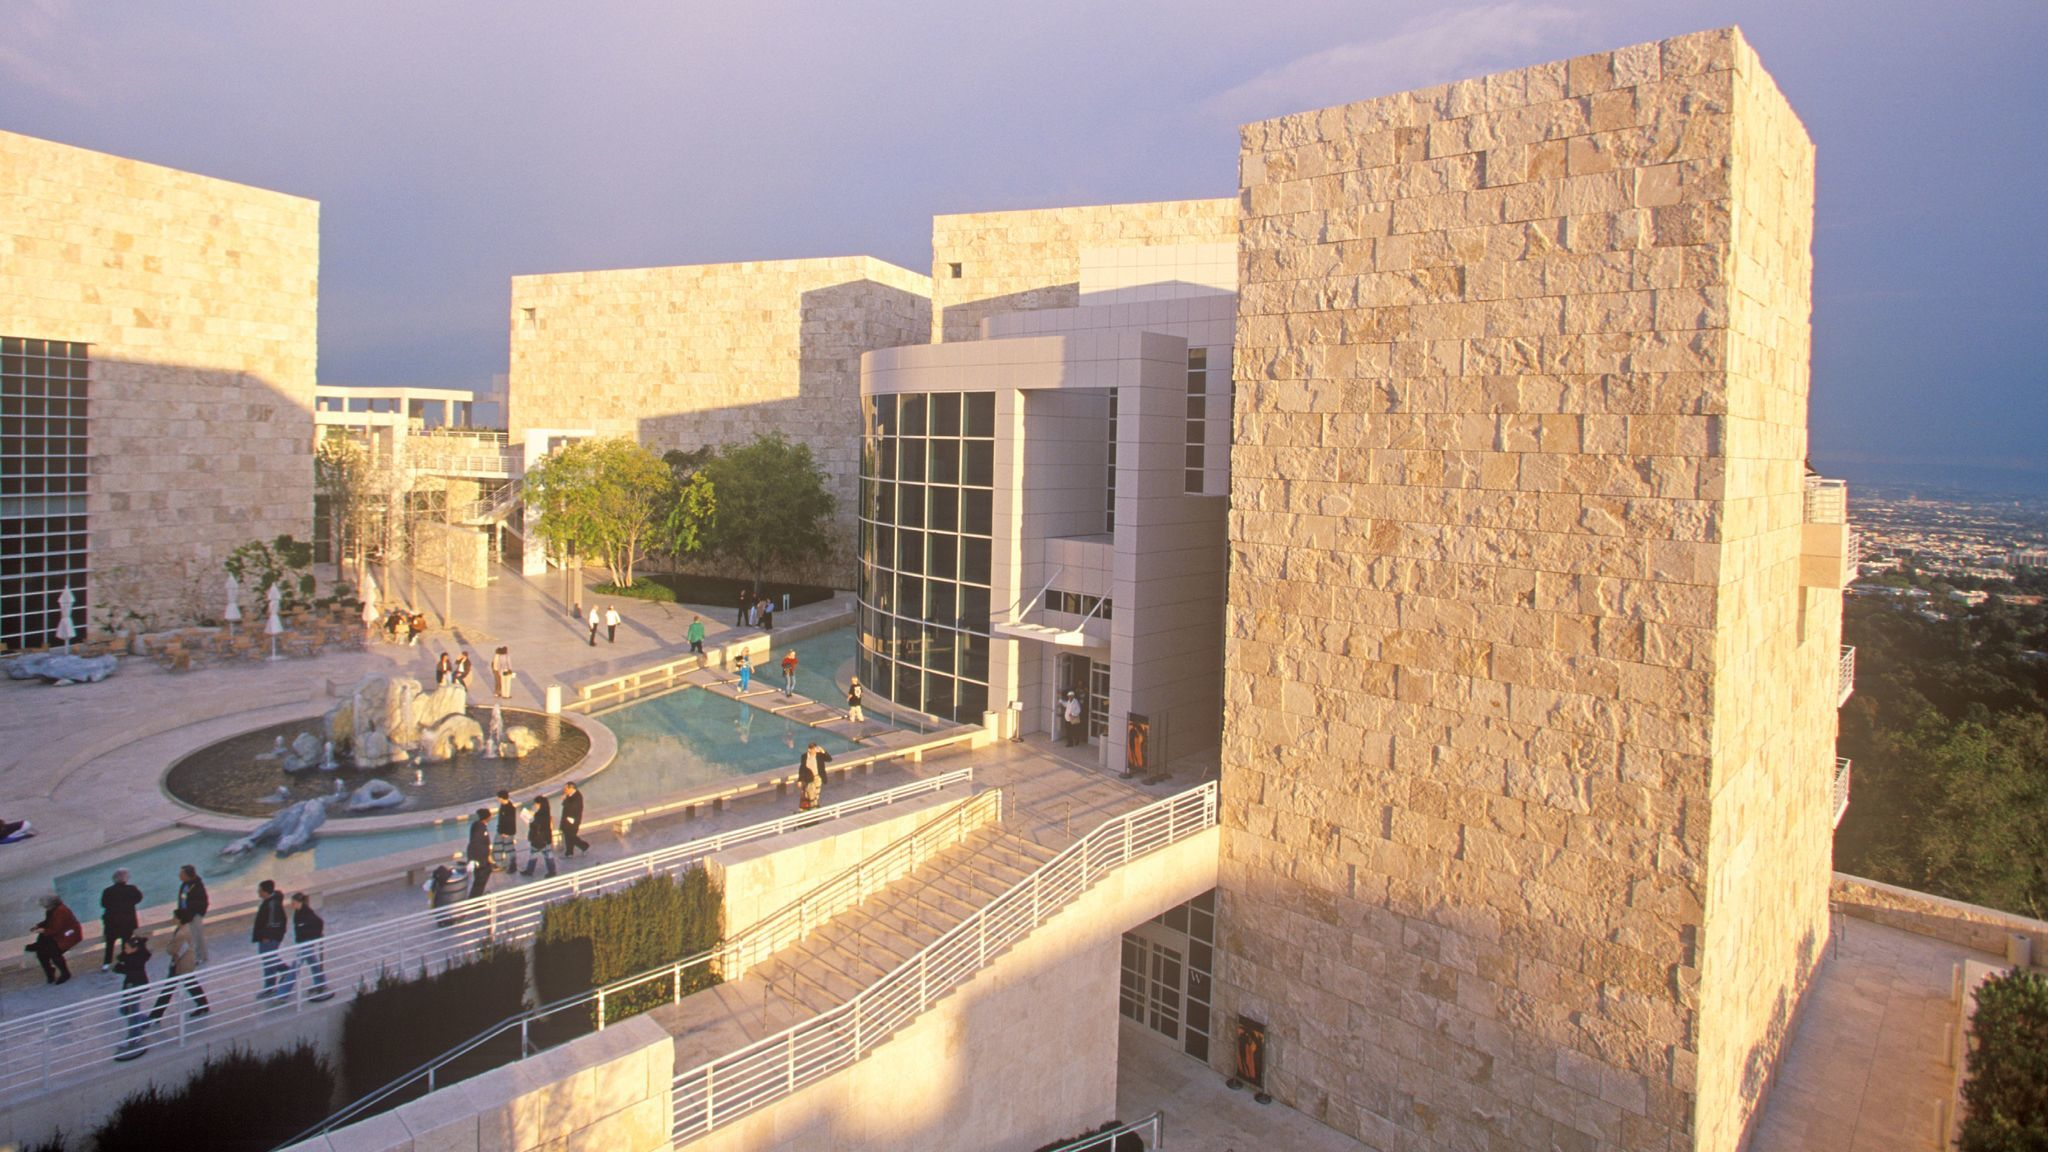 The Getty Center at sunset, Brentwood, California